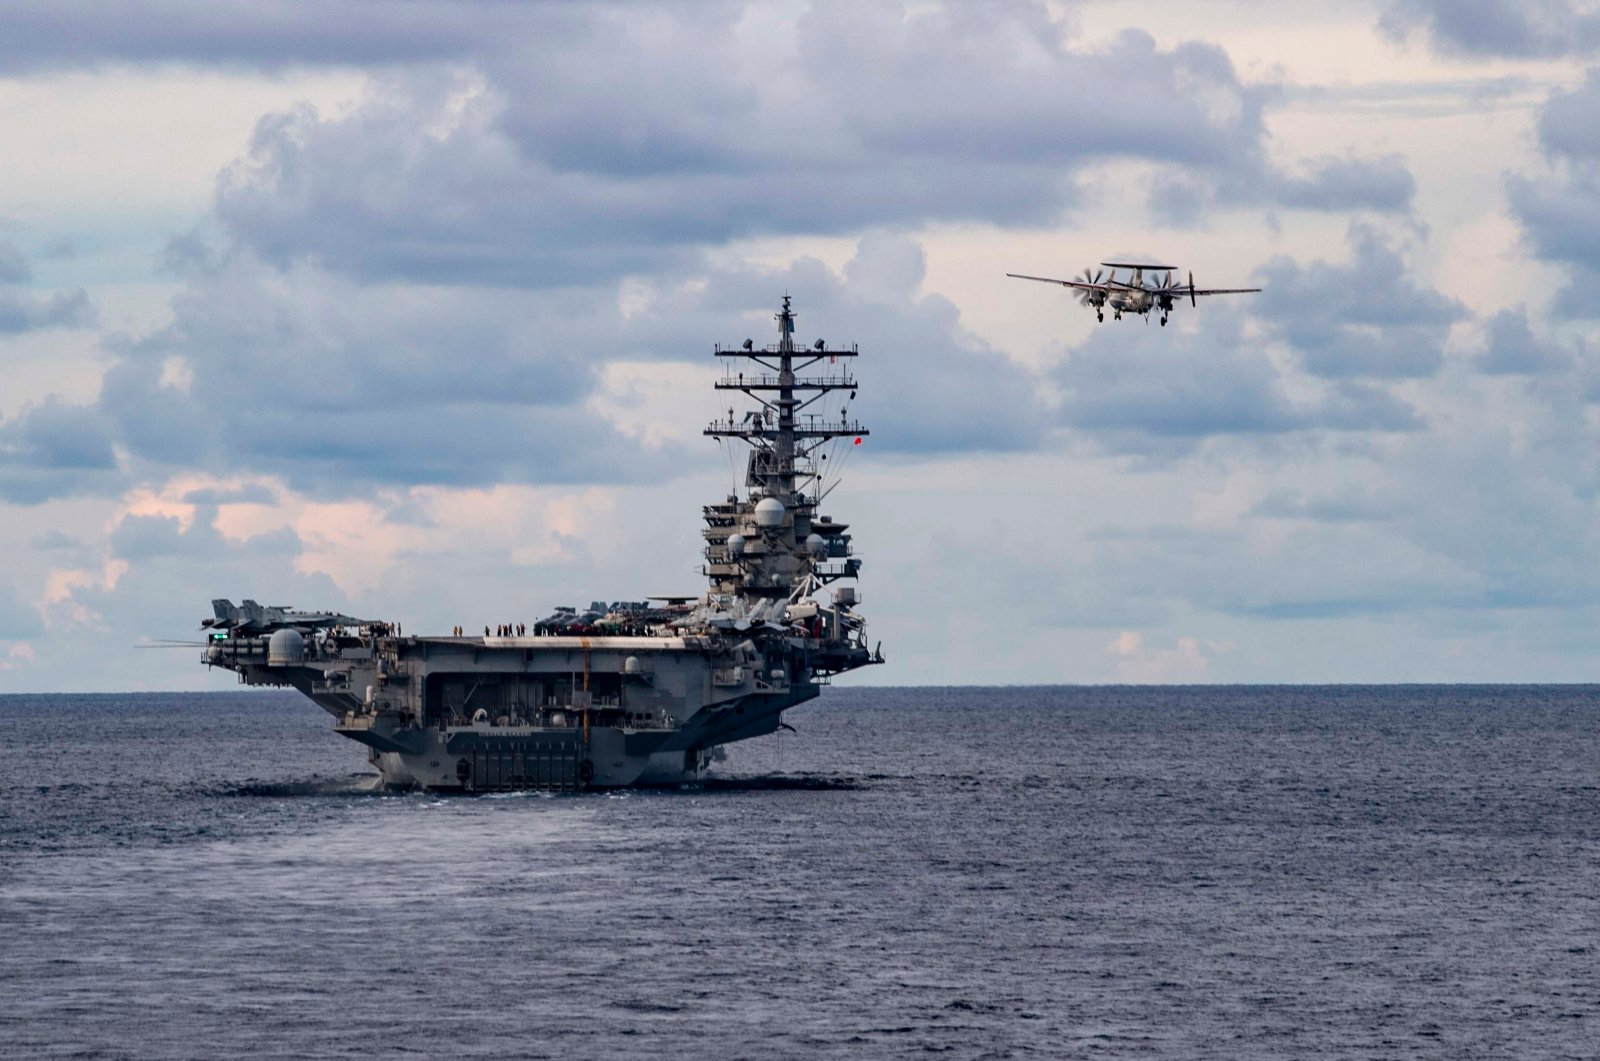 An E-2D Advanced Hawkeye, assigned to the Tigertails of Carrier Airborne Early Warning Squadron (VAW) 125, flys past the aircraft carrier USS Ronald Regan (CVN 76) during a drill in the South China Sea, July 6, 2020. (EPA Photo)